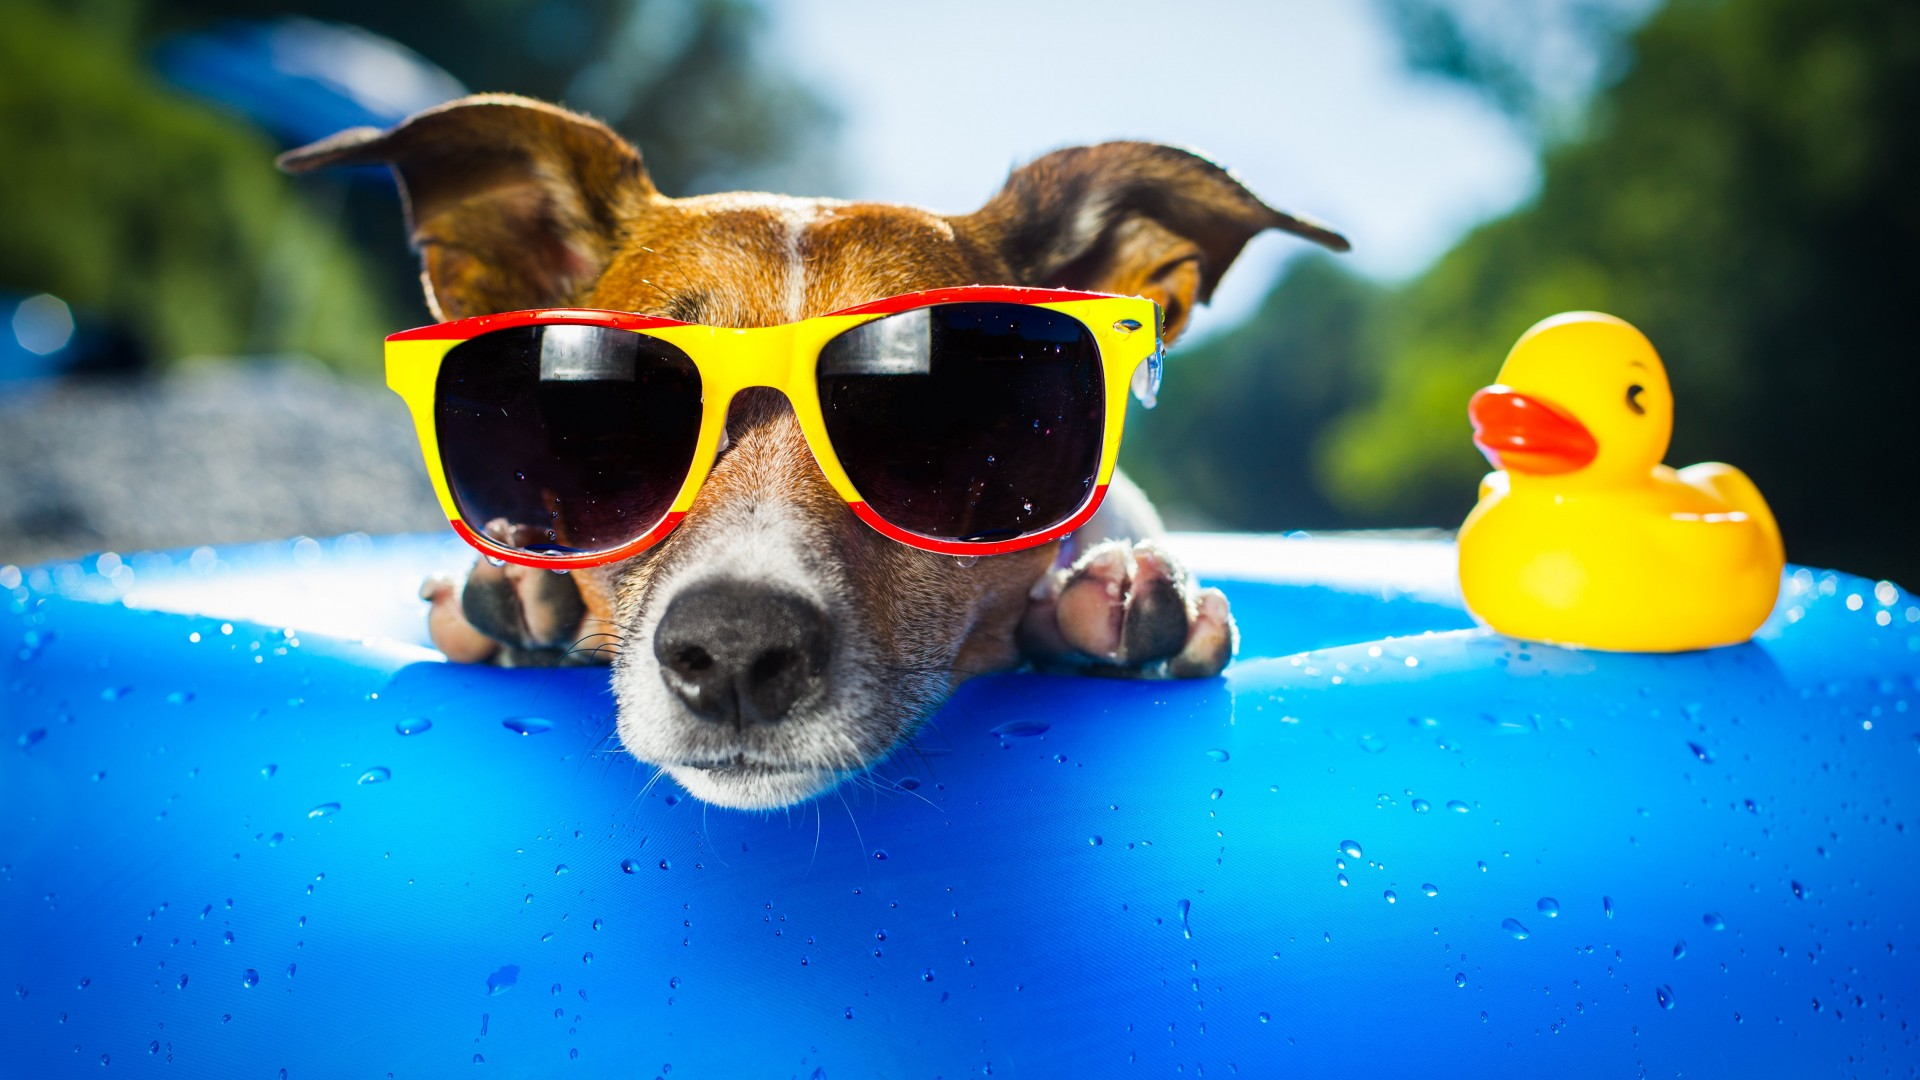 Dog, puppy, duck, glasses, drops, summer, resort, funny, beach, blue (horizontal)